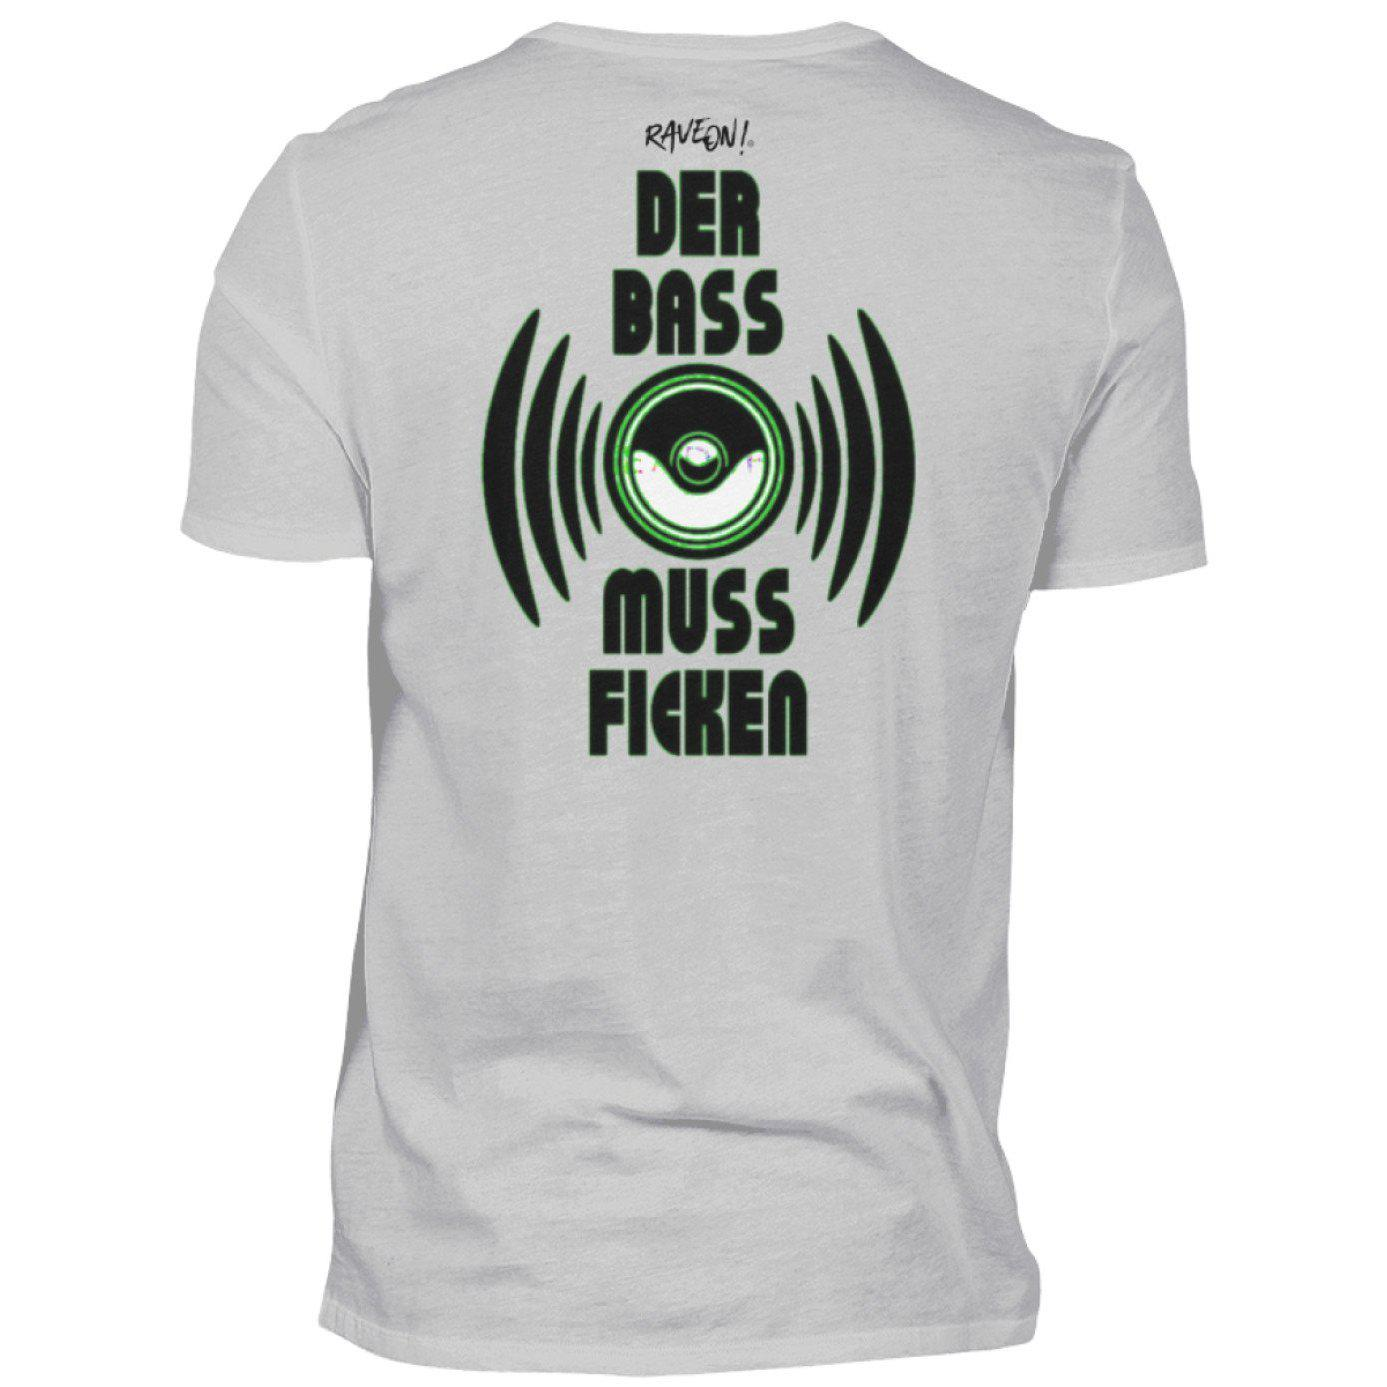 DER BASS MUSS F*n! Back Side - Rave On!® - Herren Shirt Herren Basic T-Shirt Pacific Grey / S - Rave On!® der Club & Techno Szene Shop für Coole Junge Mode Streetwear Style & Fashion Outfits + Sexy Festival 420 Stuff